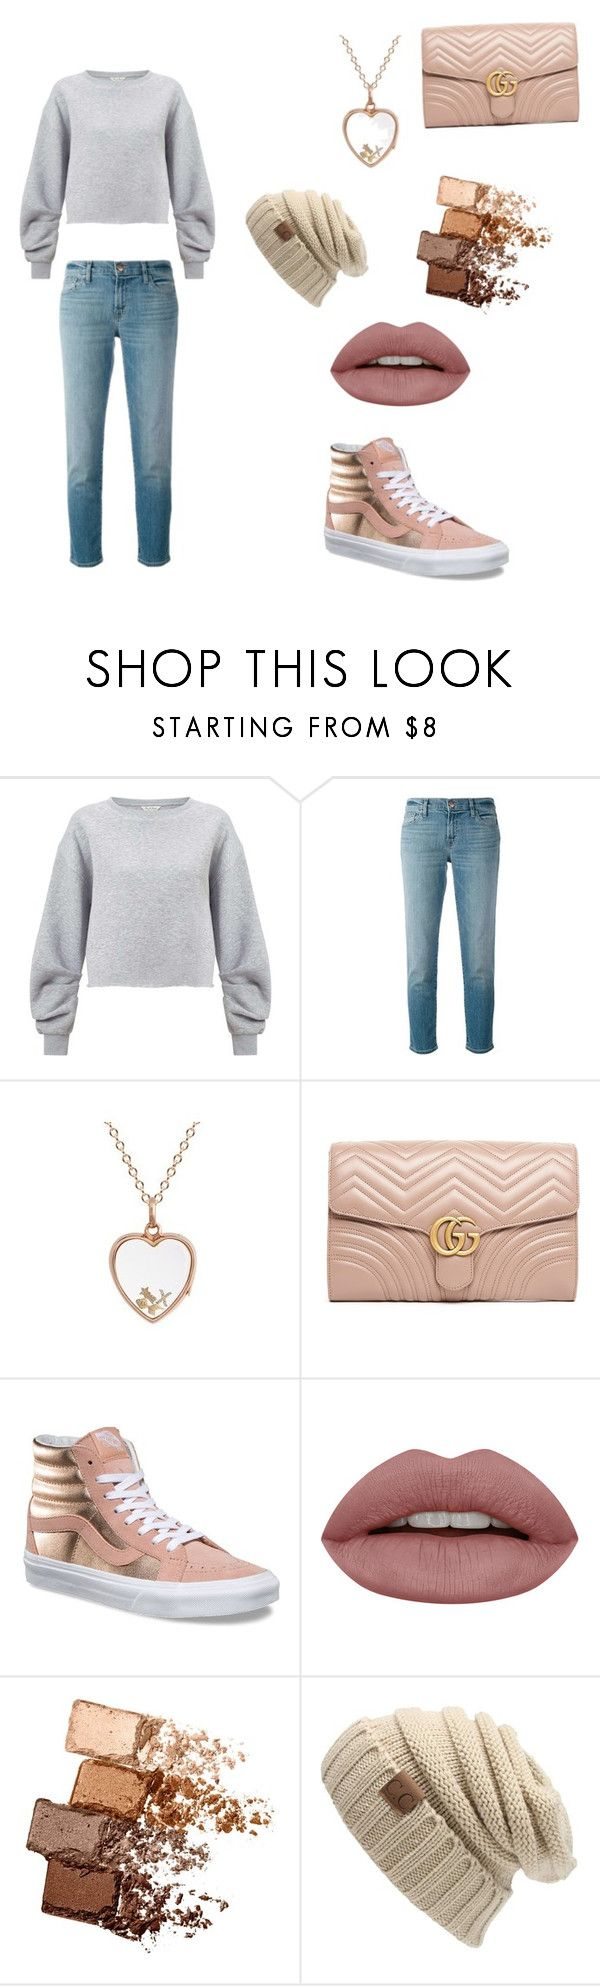 """""""Cute School Outfit"""" by torilove734 ❤ liked on Polyvore featuring Miss Selfridge, J Brand, Loquet, Gucci, Vans and Maybelline"""